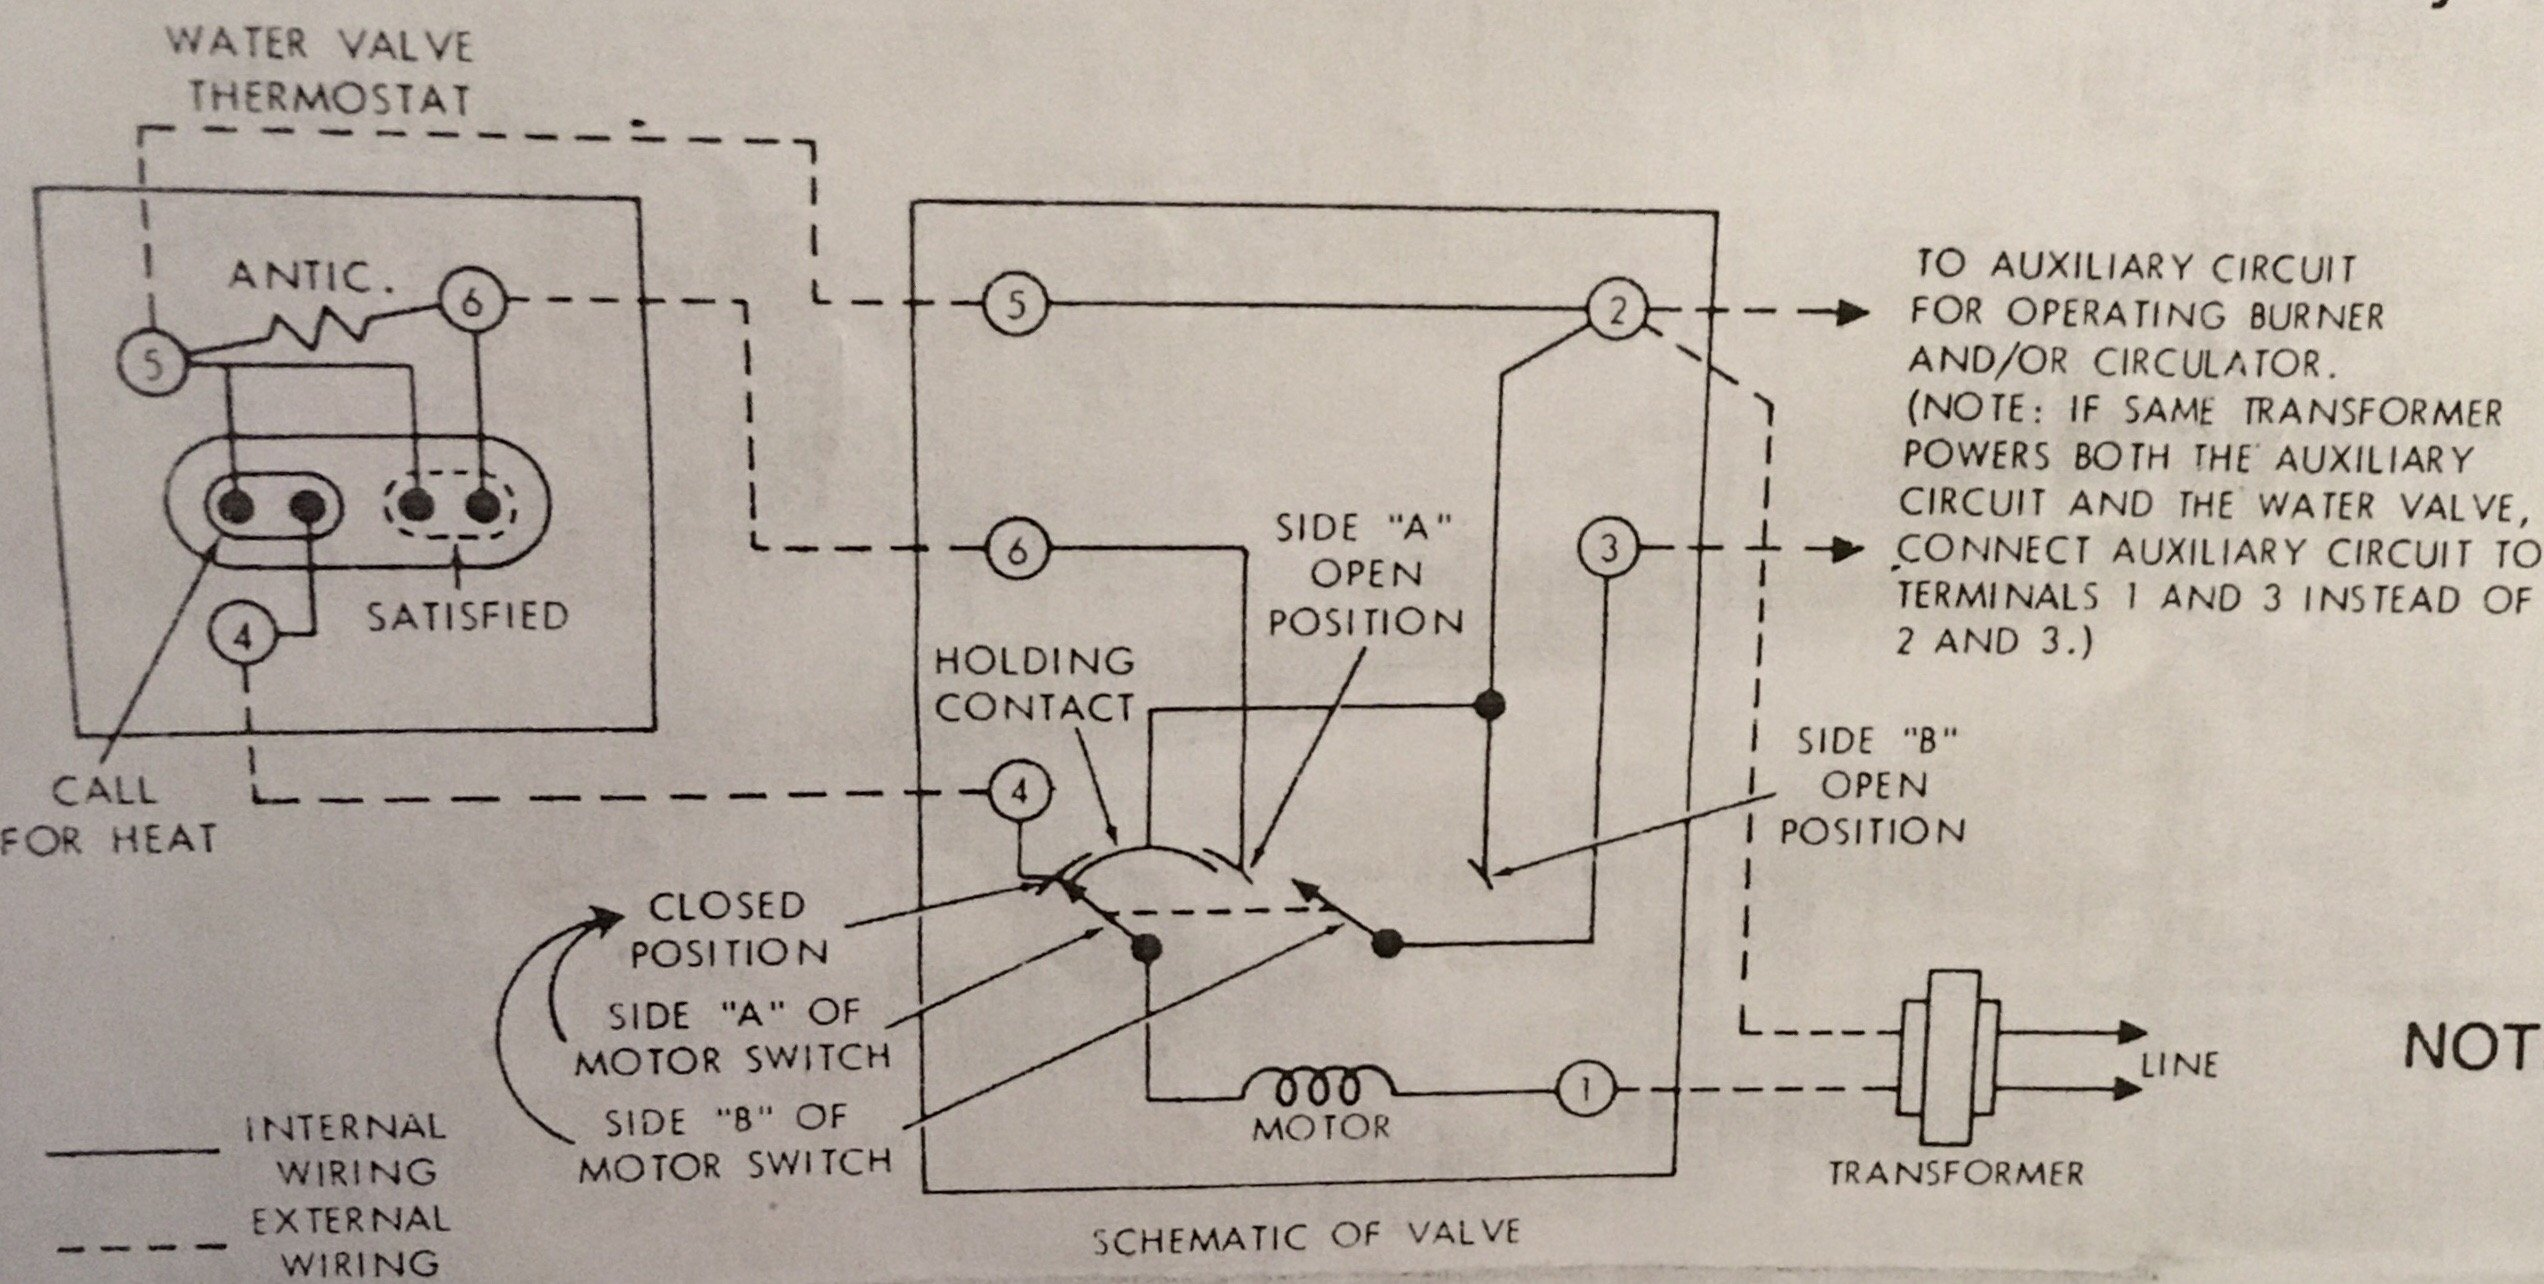 how can i add additional circulator relay to existing thermostat taco zone valve wiring guide also included here is the wiring schematic for the relay i'm particularly concerned about having two transformers in the same system